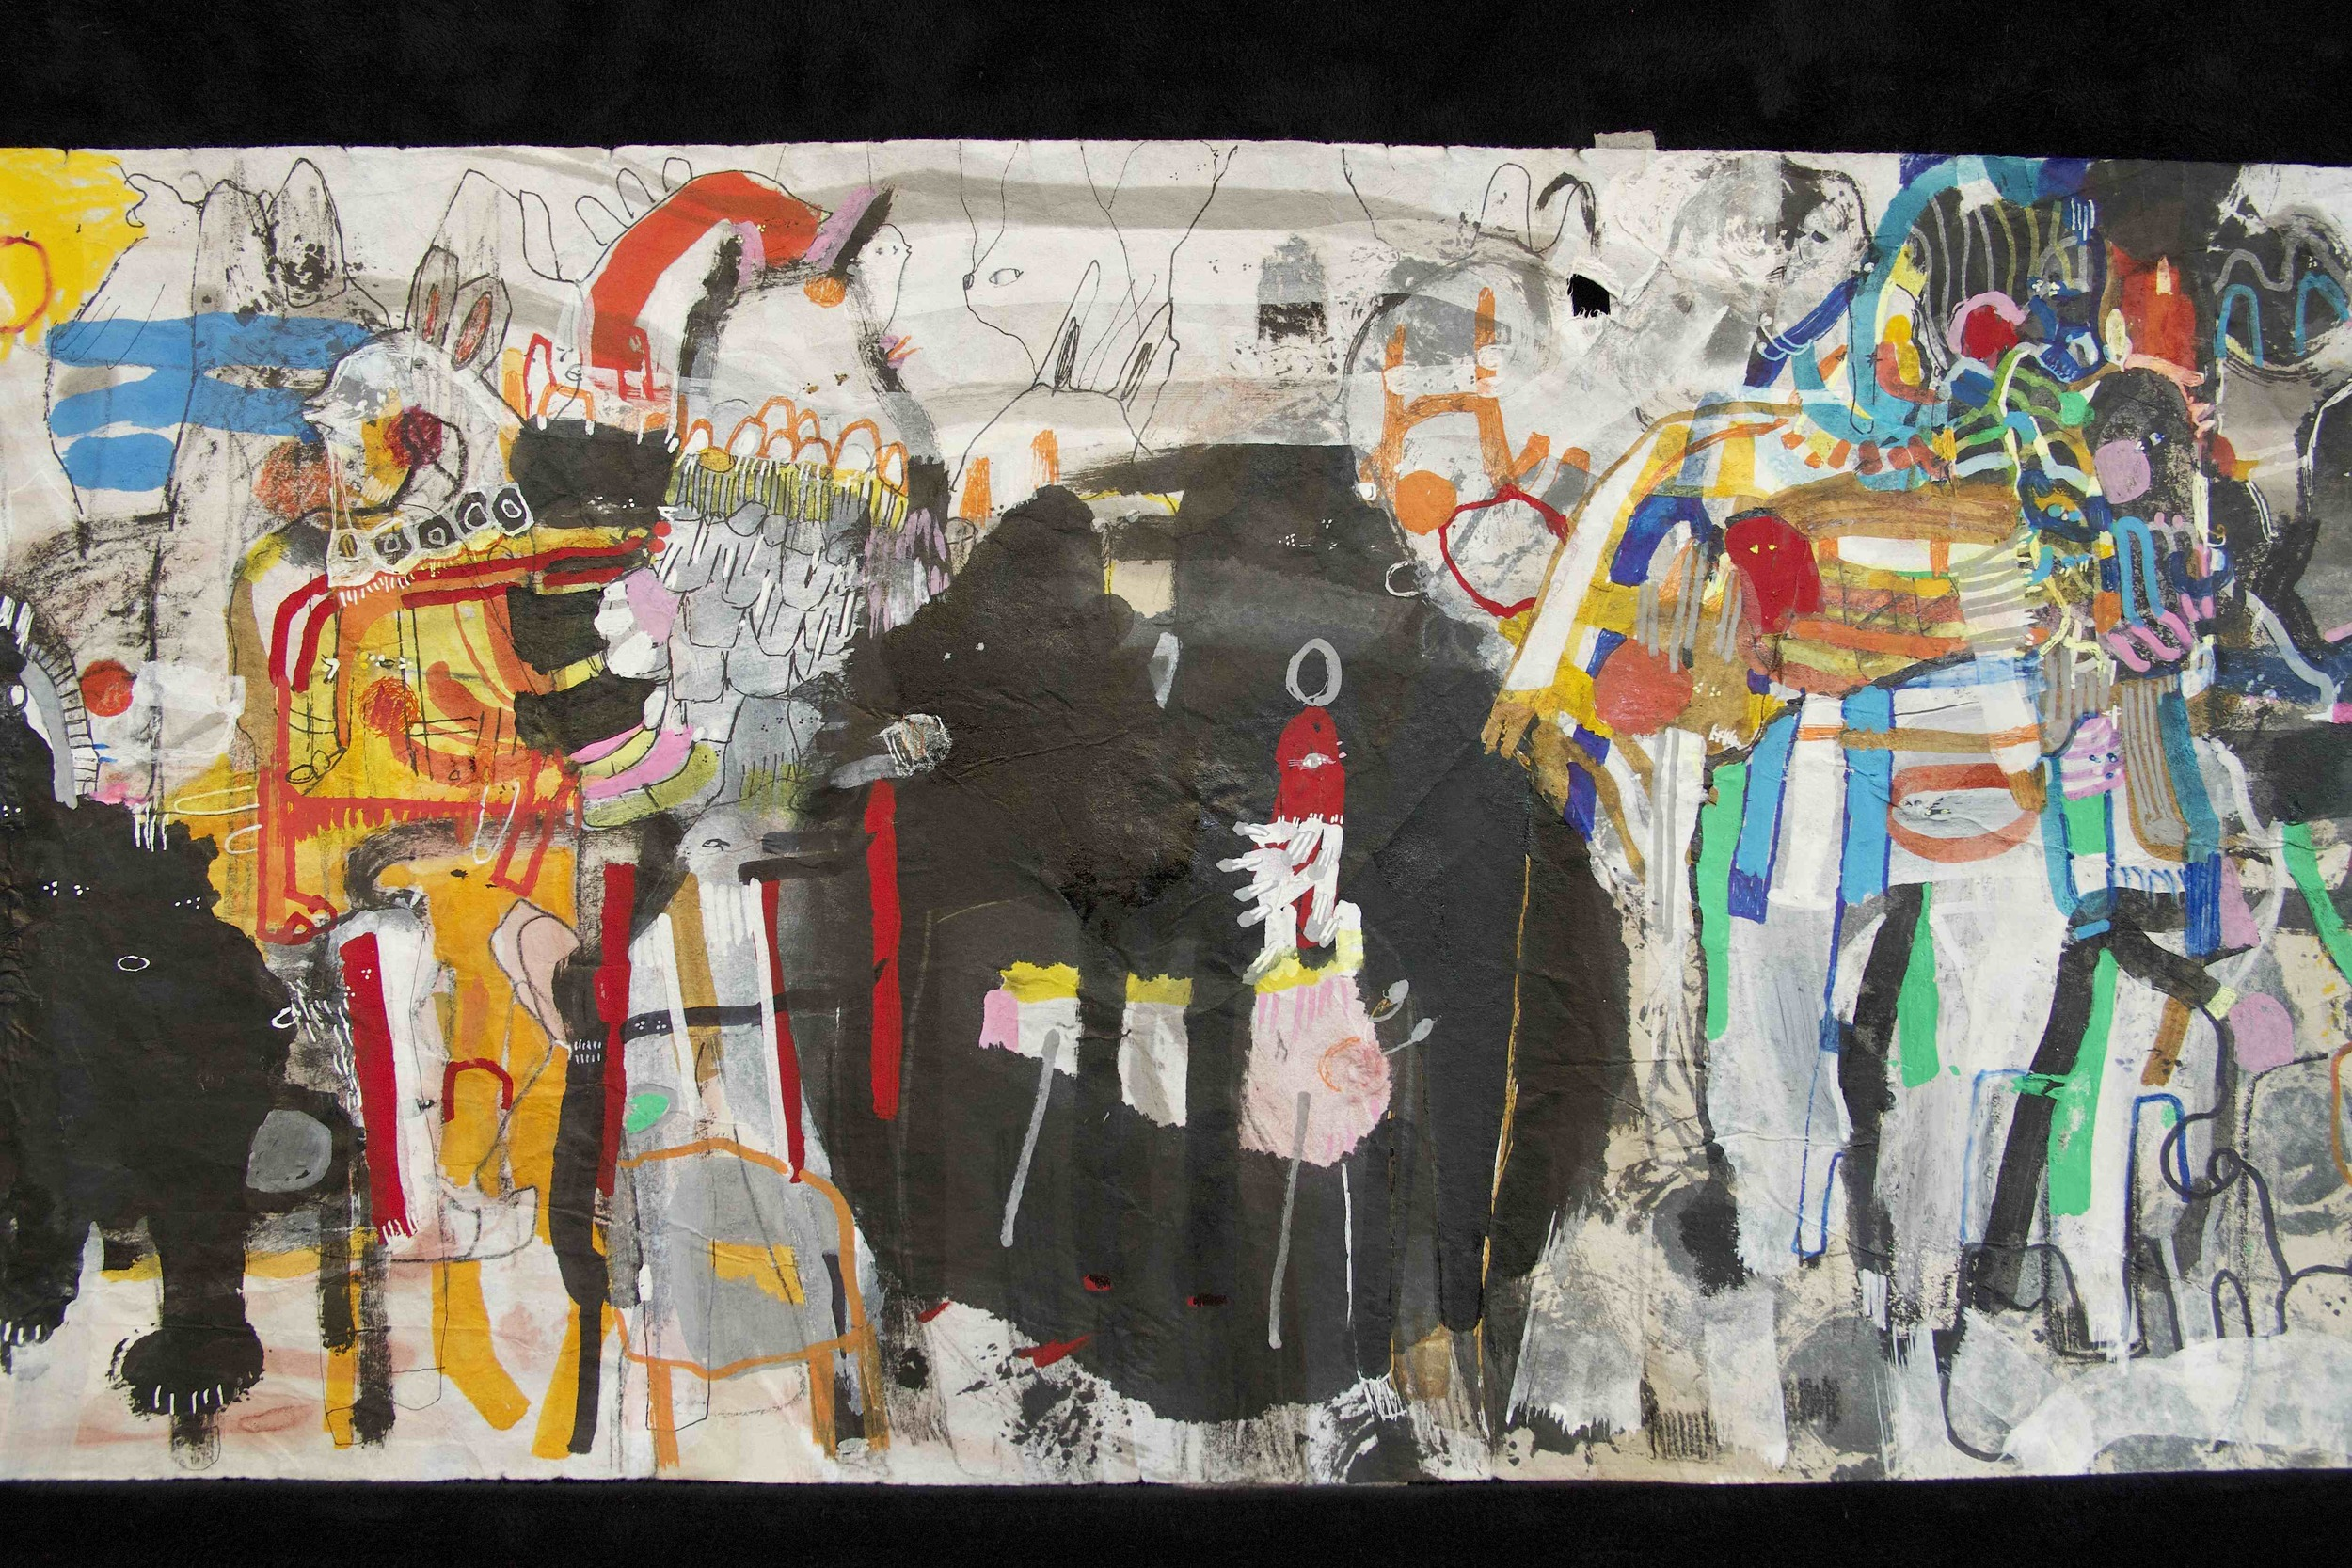 """[Detail no 28]  """"The Wind atop The Wood -Winds of Mount Meru Tangling Threads of Rainbow atop the Wood -Scroll 8""""   11 inches x 60 feet  ink, watercolor, gouache, dye, lost & found paper, crayon and graphite on mulberry paper scroll  2015"""